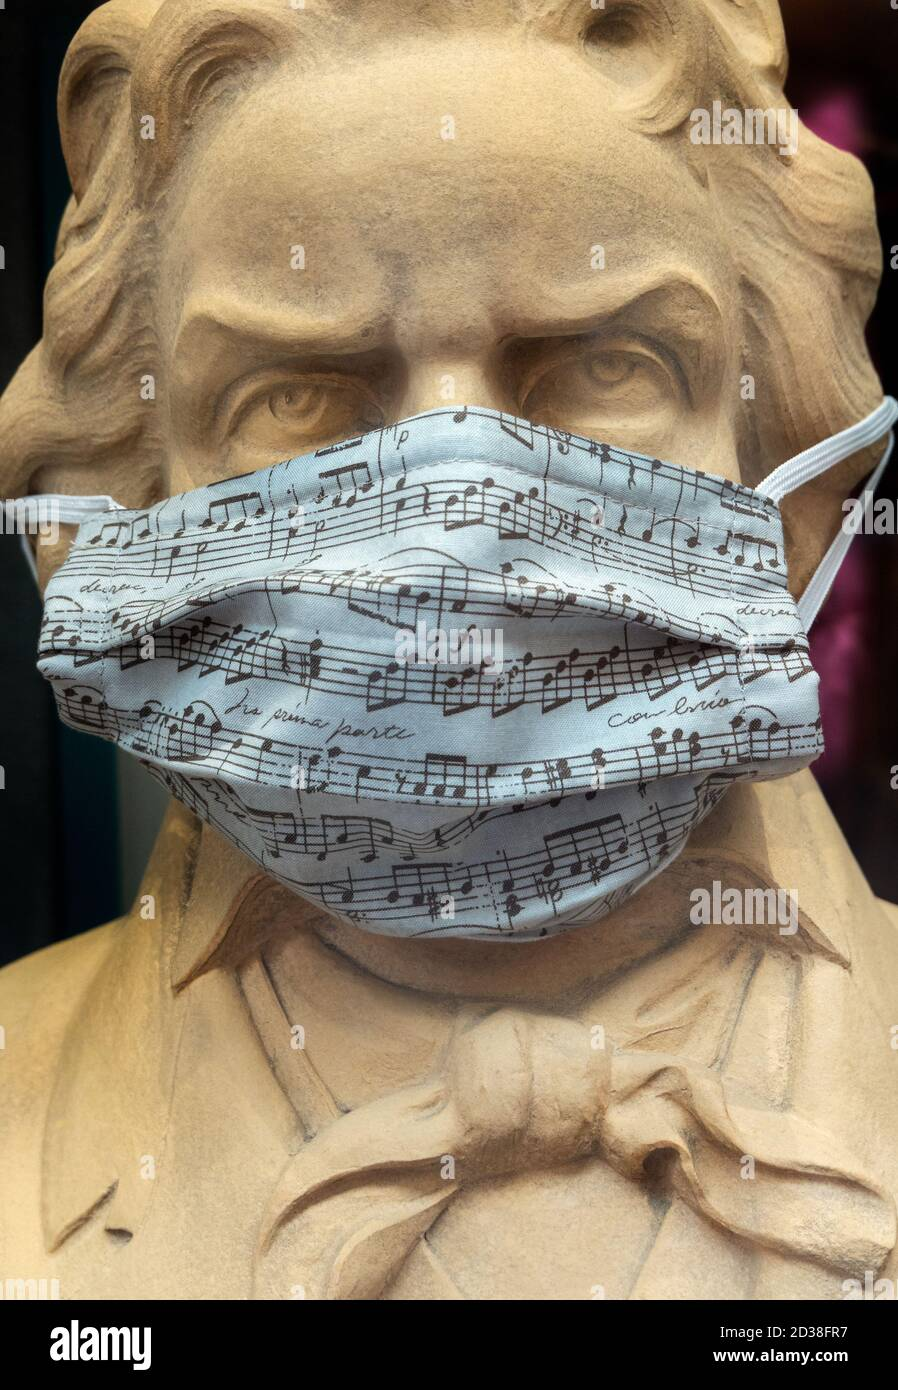 Beethoven statue bust wearing Covid Covid19 Corona face mask with musical score in Trier Germany 2020 Stock Photo